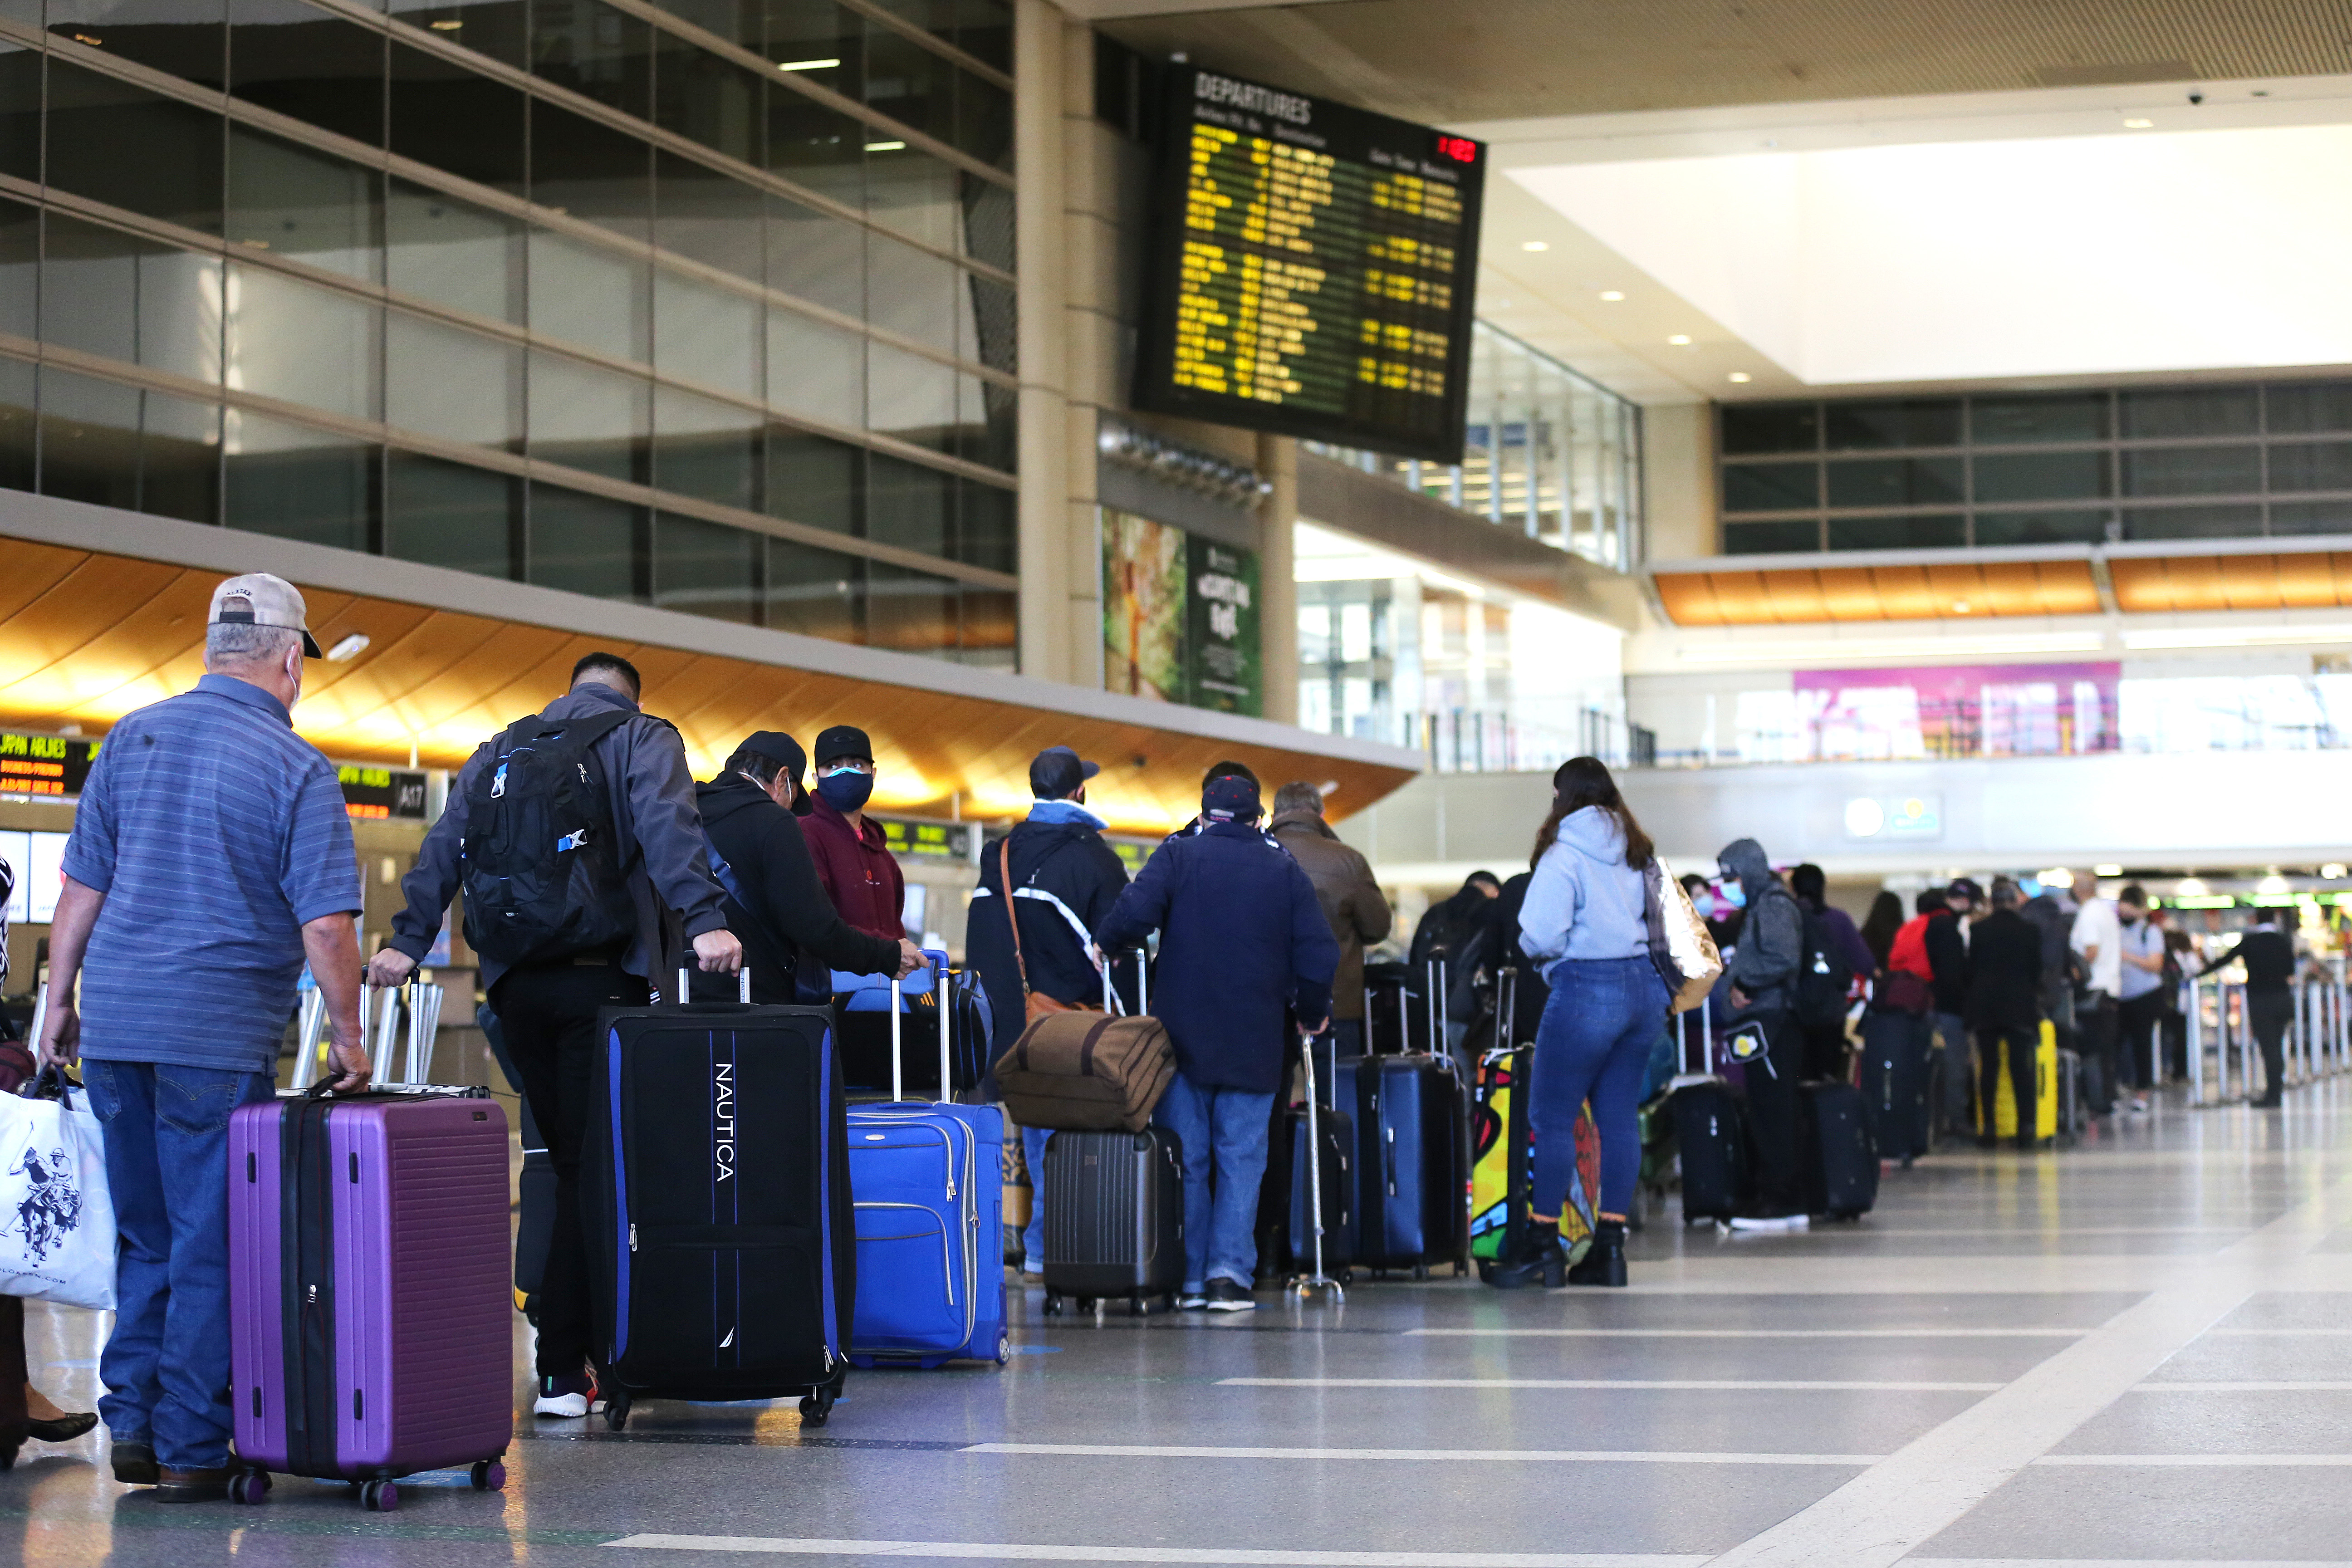 Christmas Day At Dfw Airport 2021 Tsa Wait Times Record Number Of Air Travelers Hit During Christmas Weekend The Washington Post